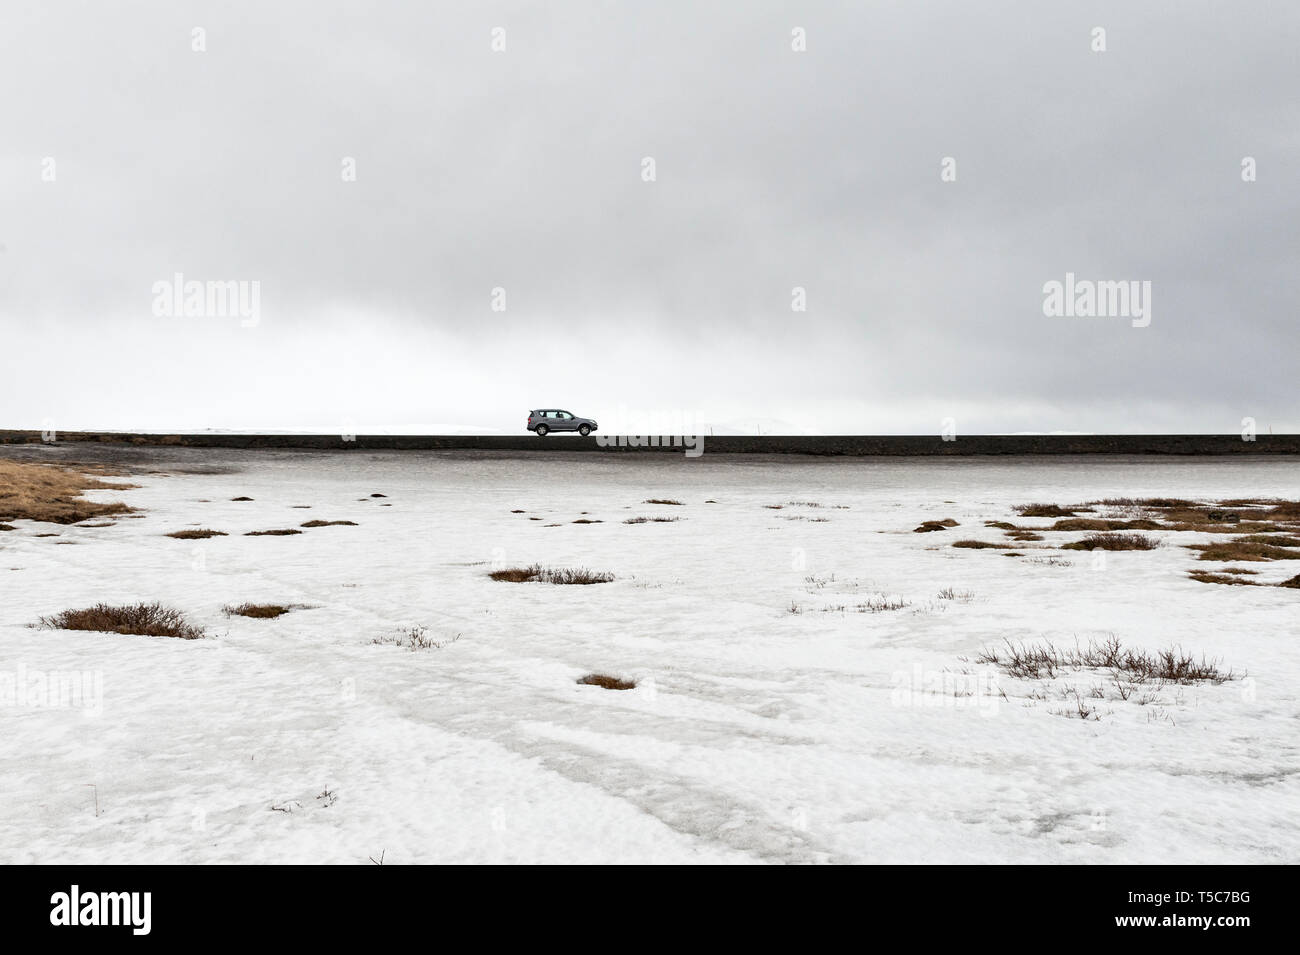 car-driving-on-a-road-beside-a-frozen-lake-in-iceland-T5C7BG.jpg